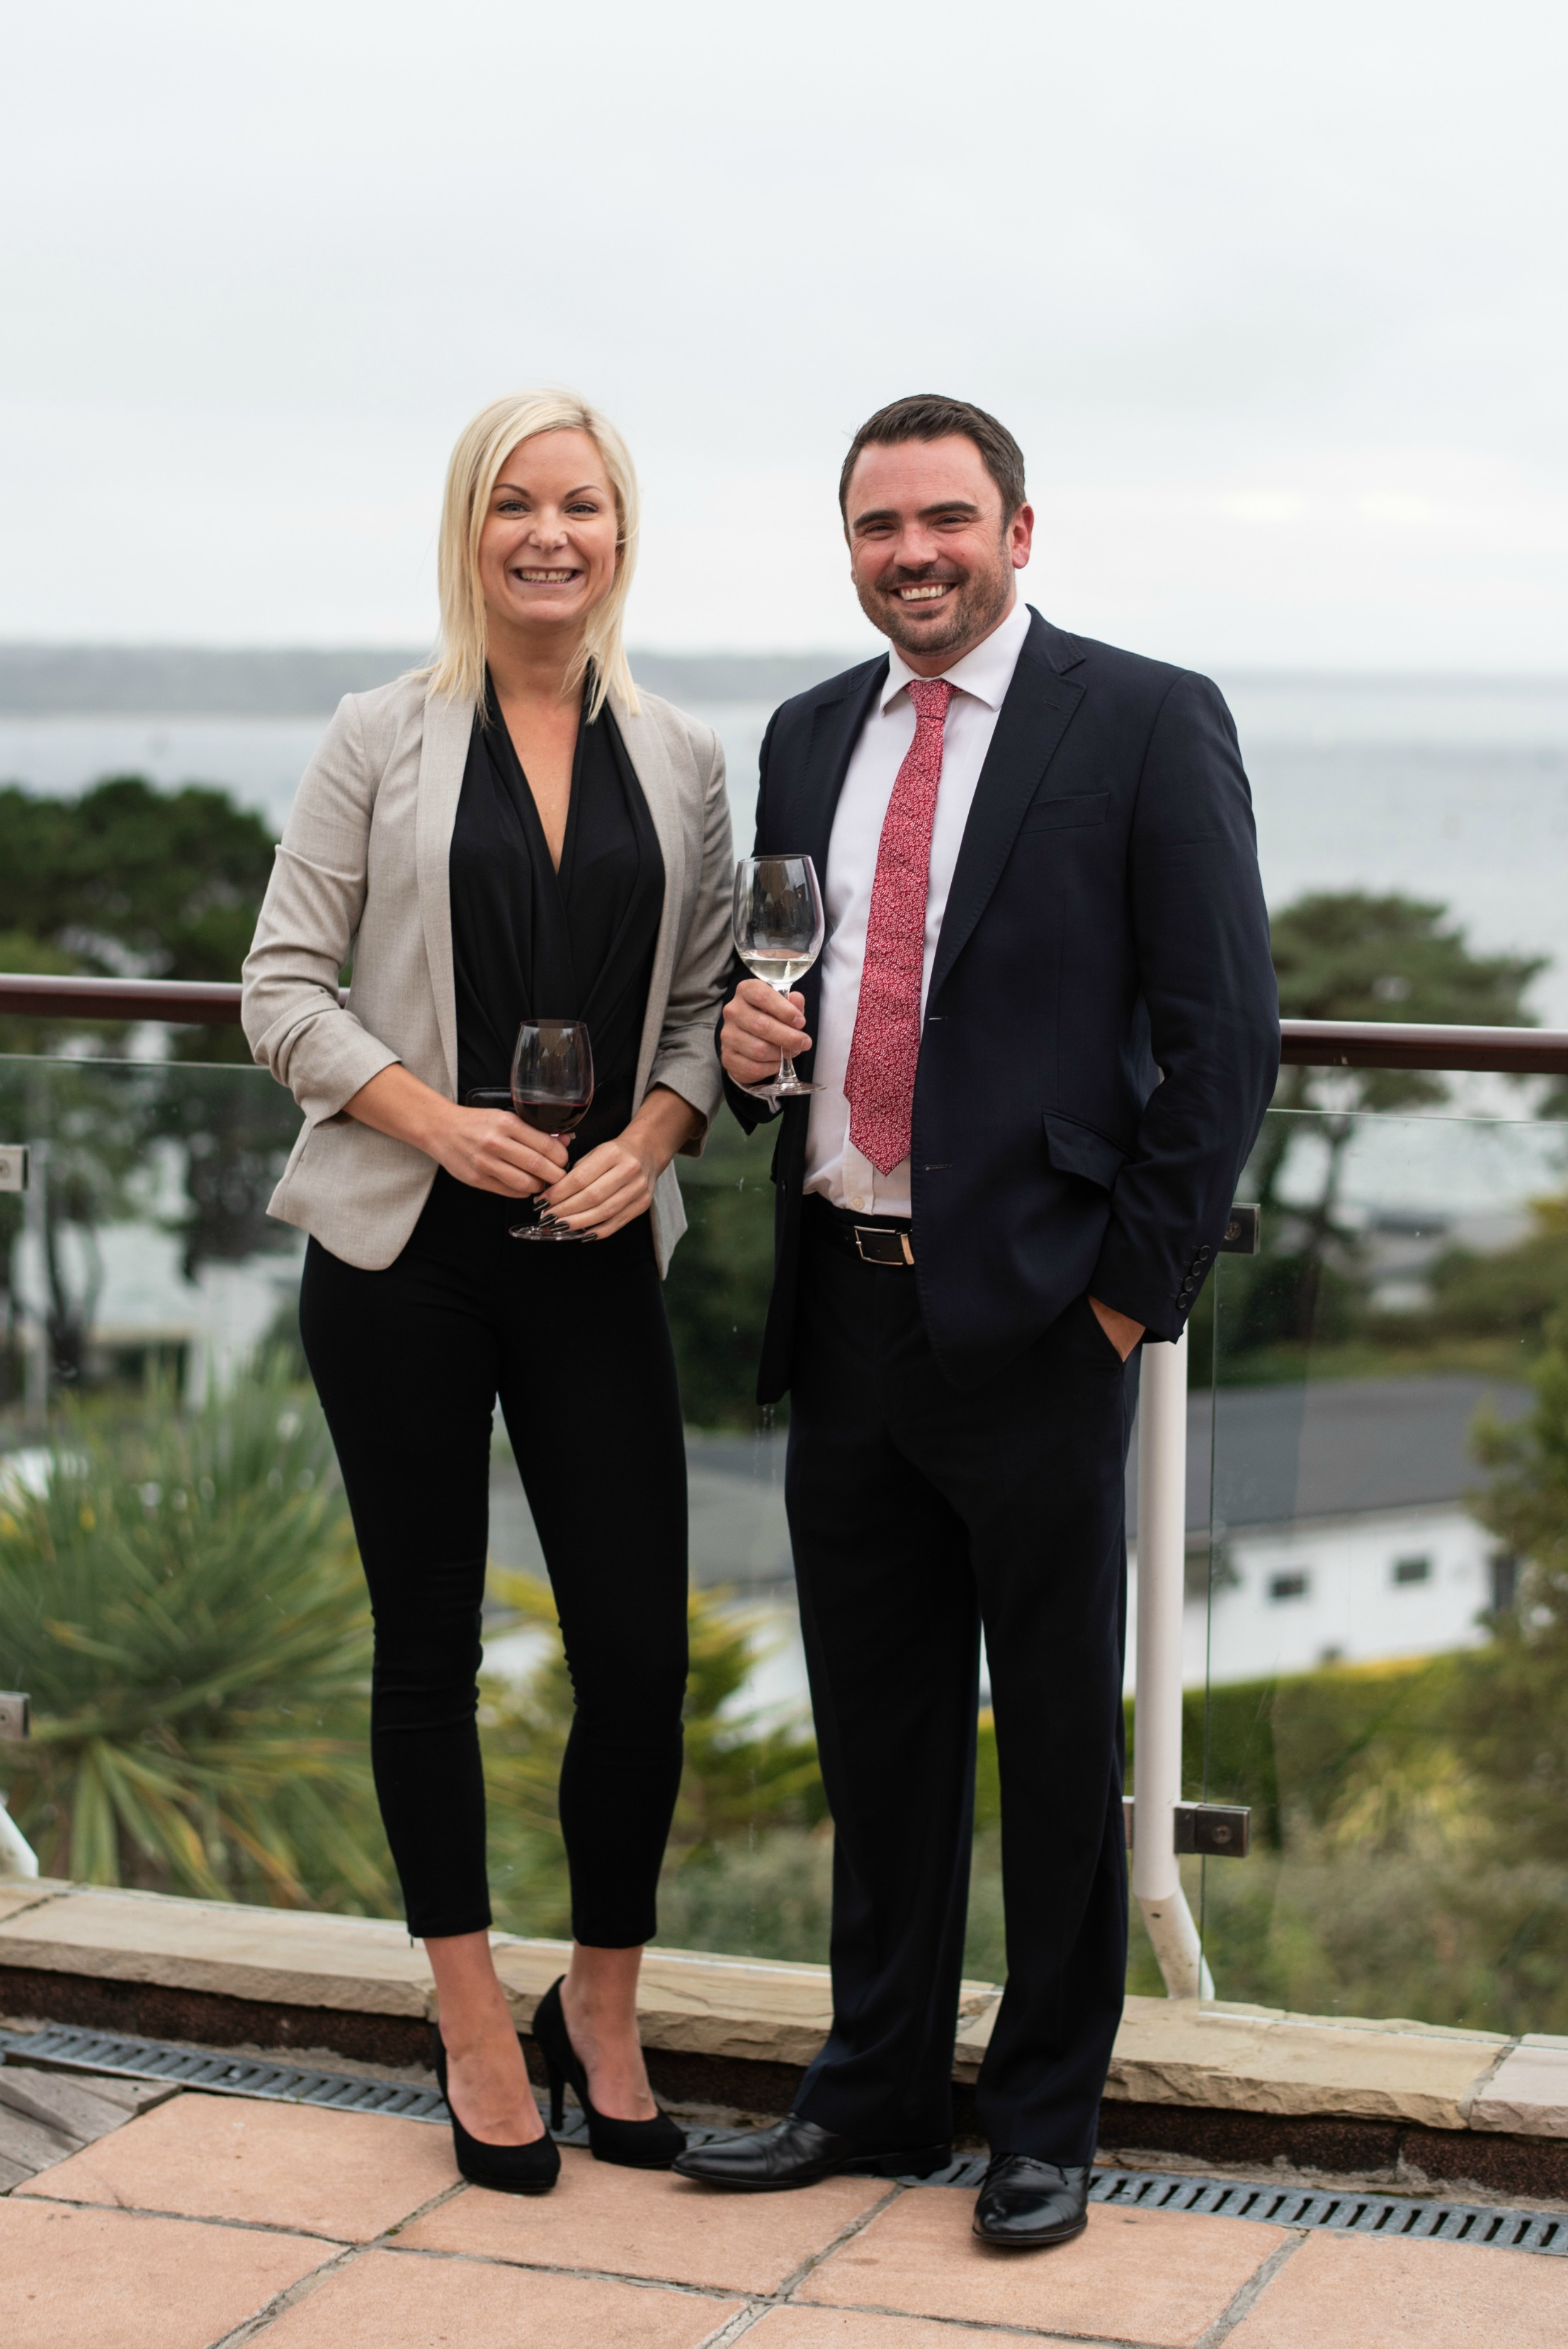 QuoStar CEO Robert Rutherford with Dorset Legal Awards' co-founder Sofie Scott